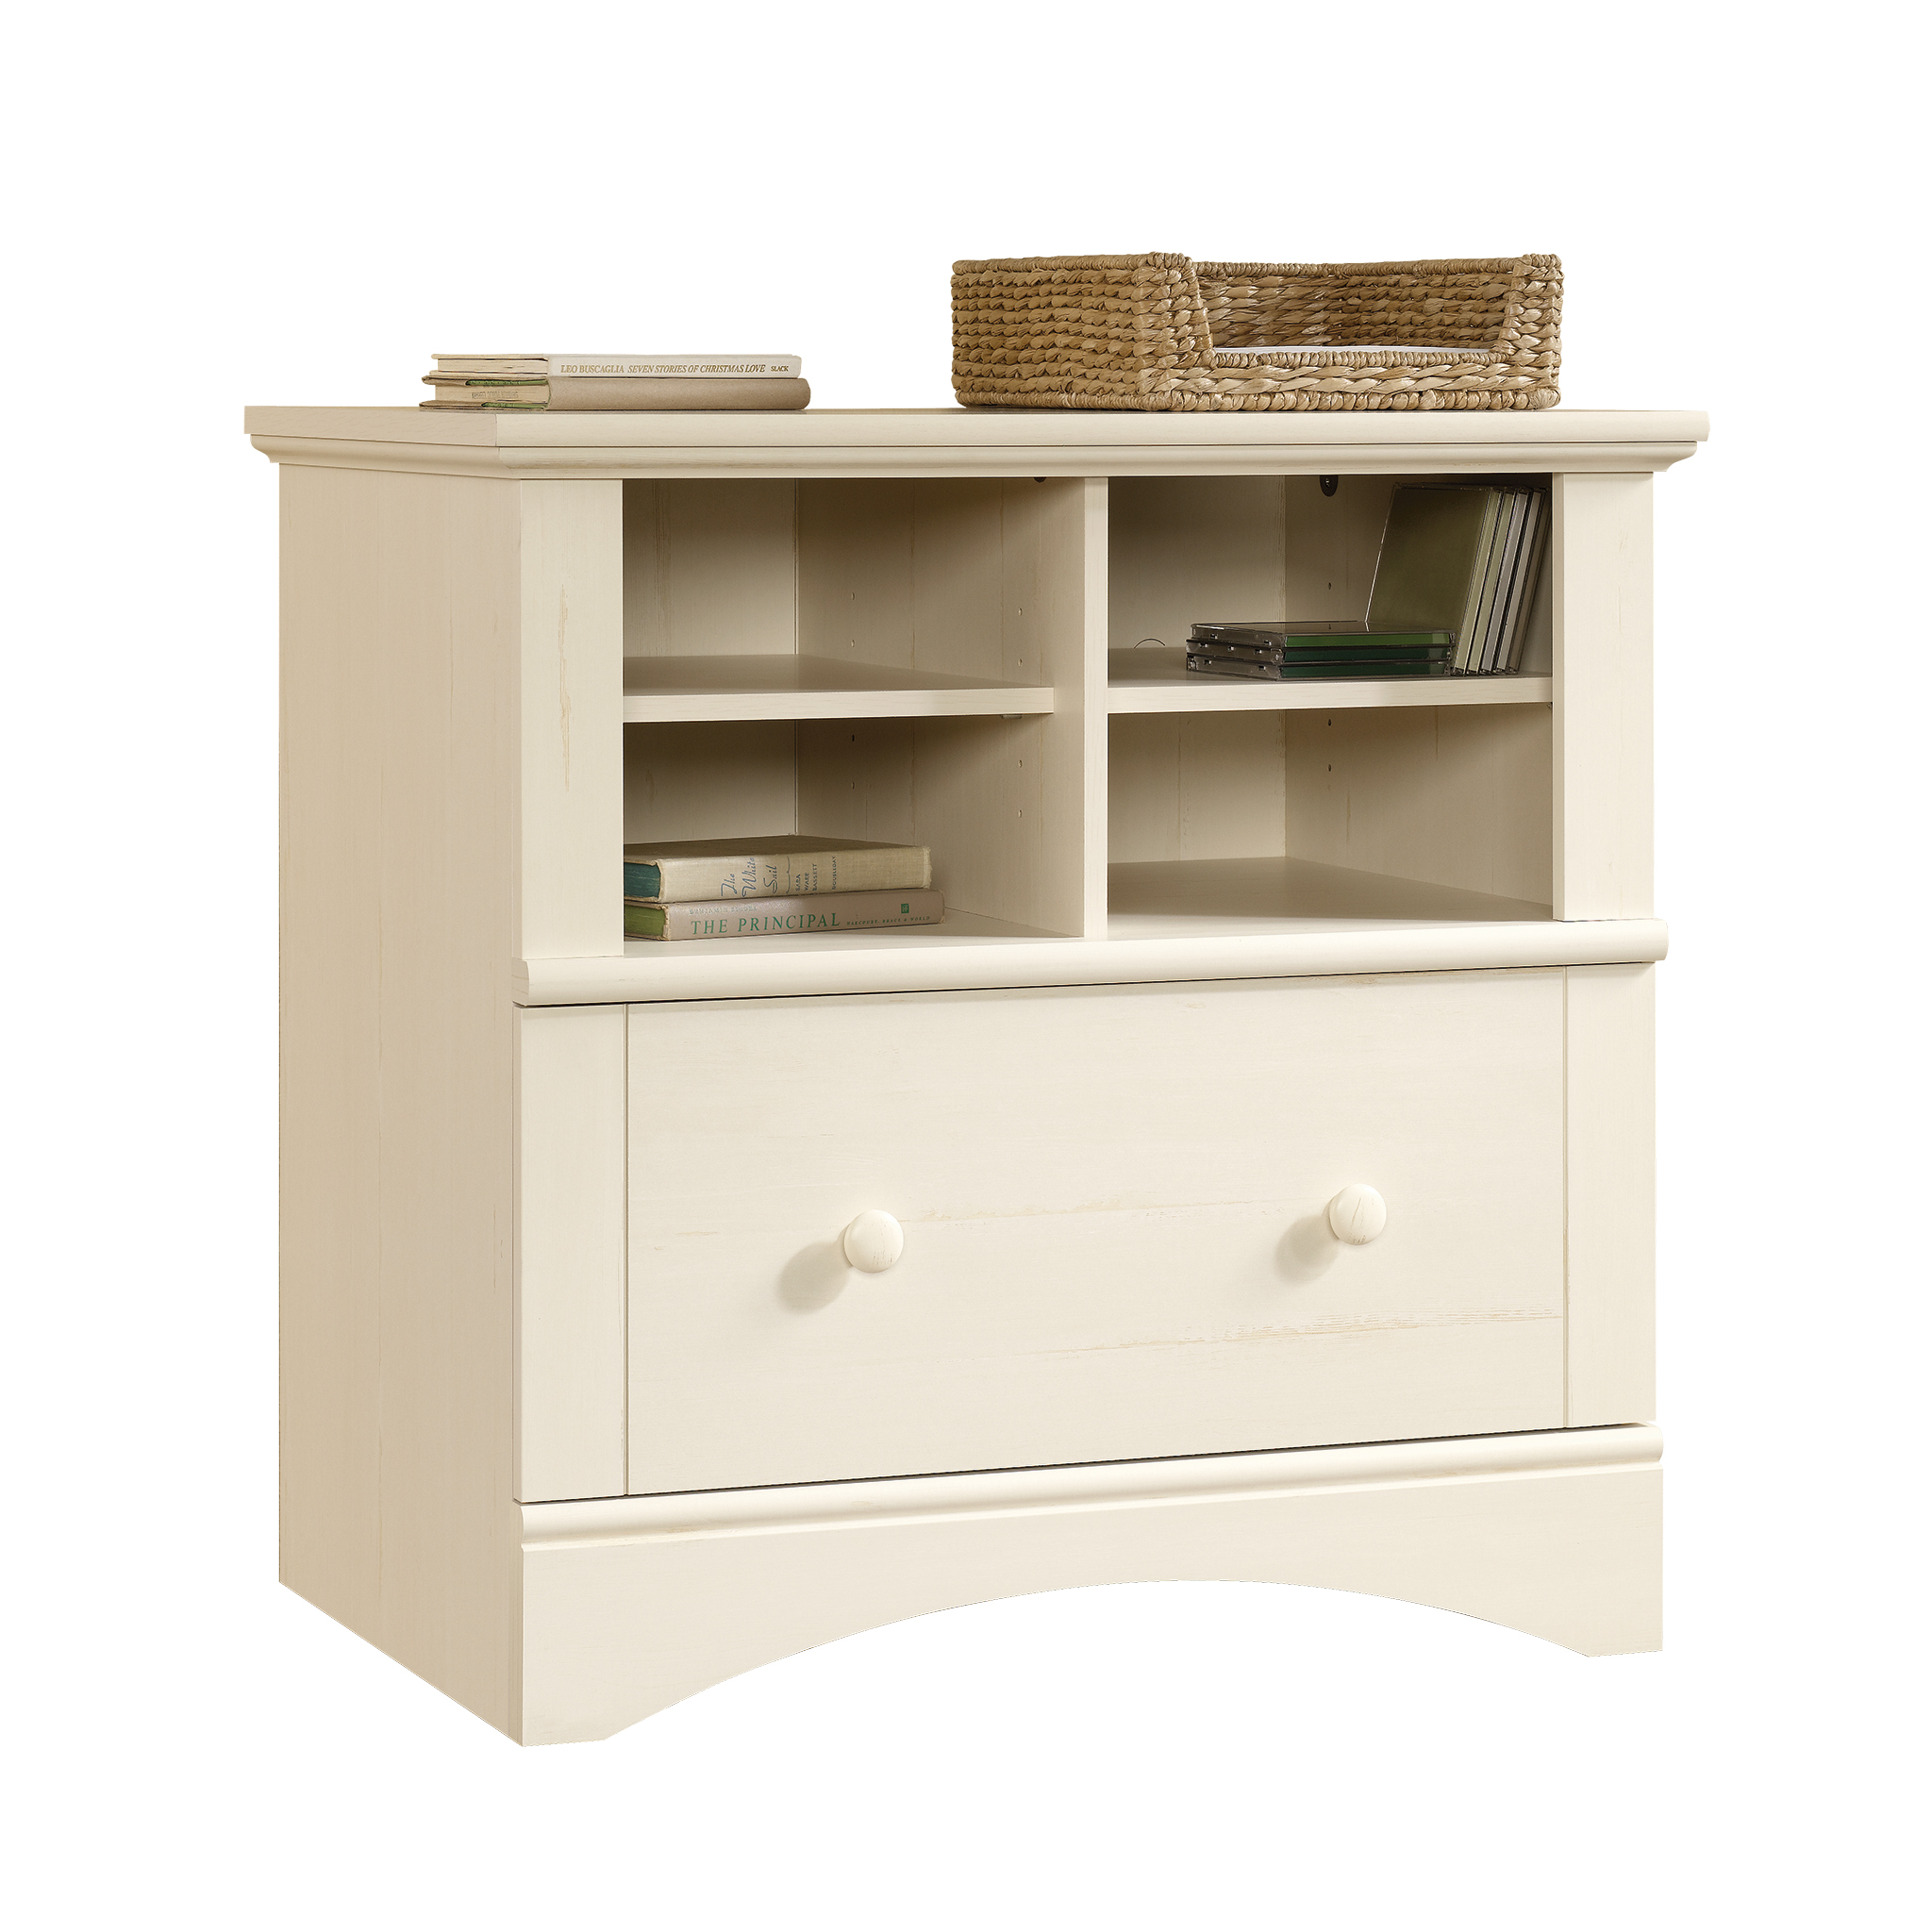 Ordinaire Sauder Harbor View Lateral File, Antiqued White Finish